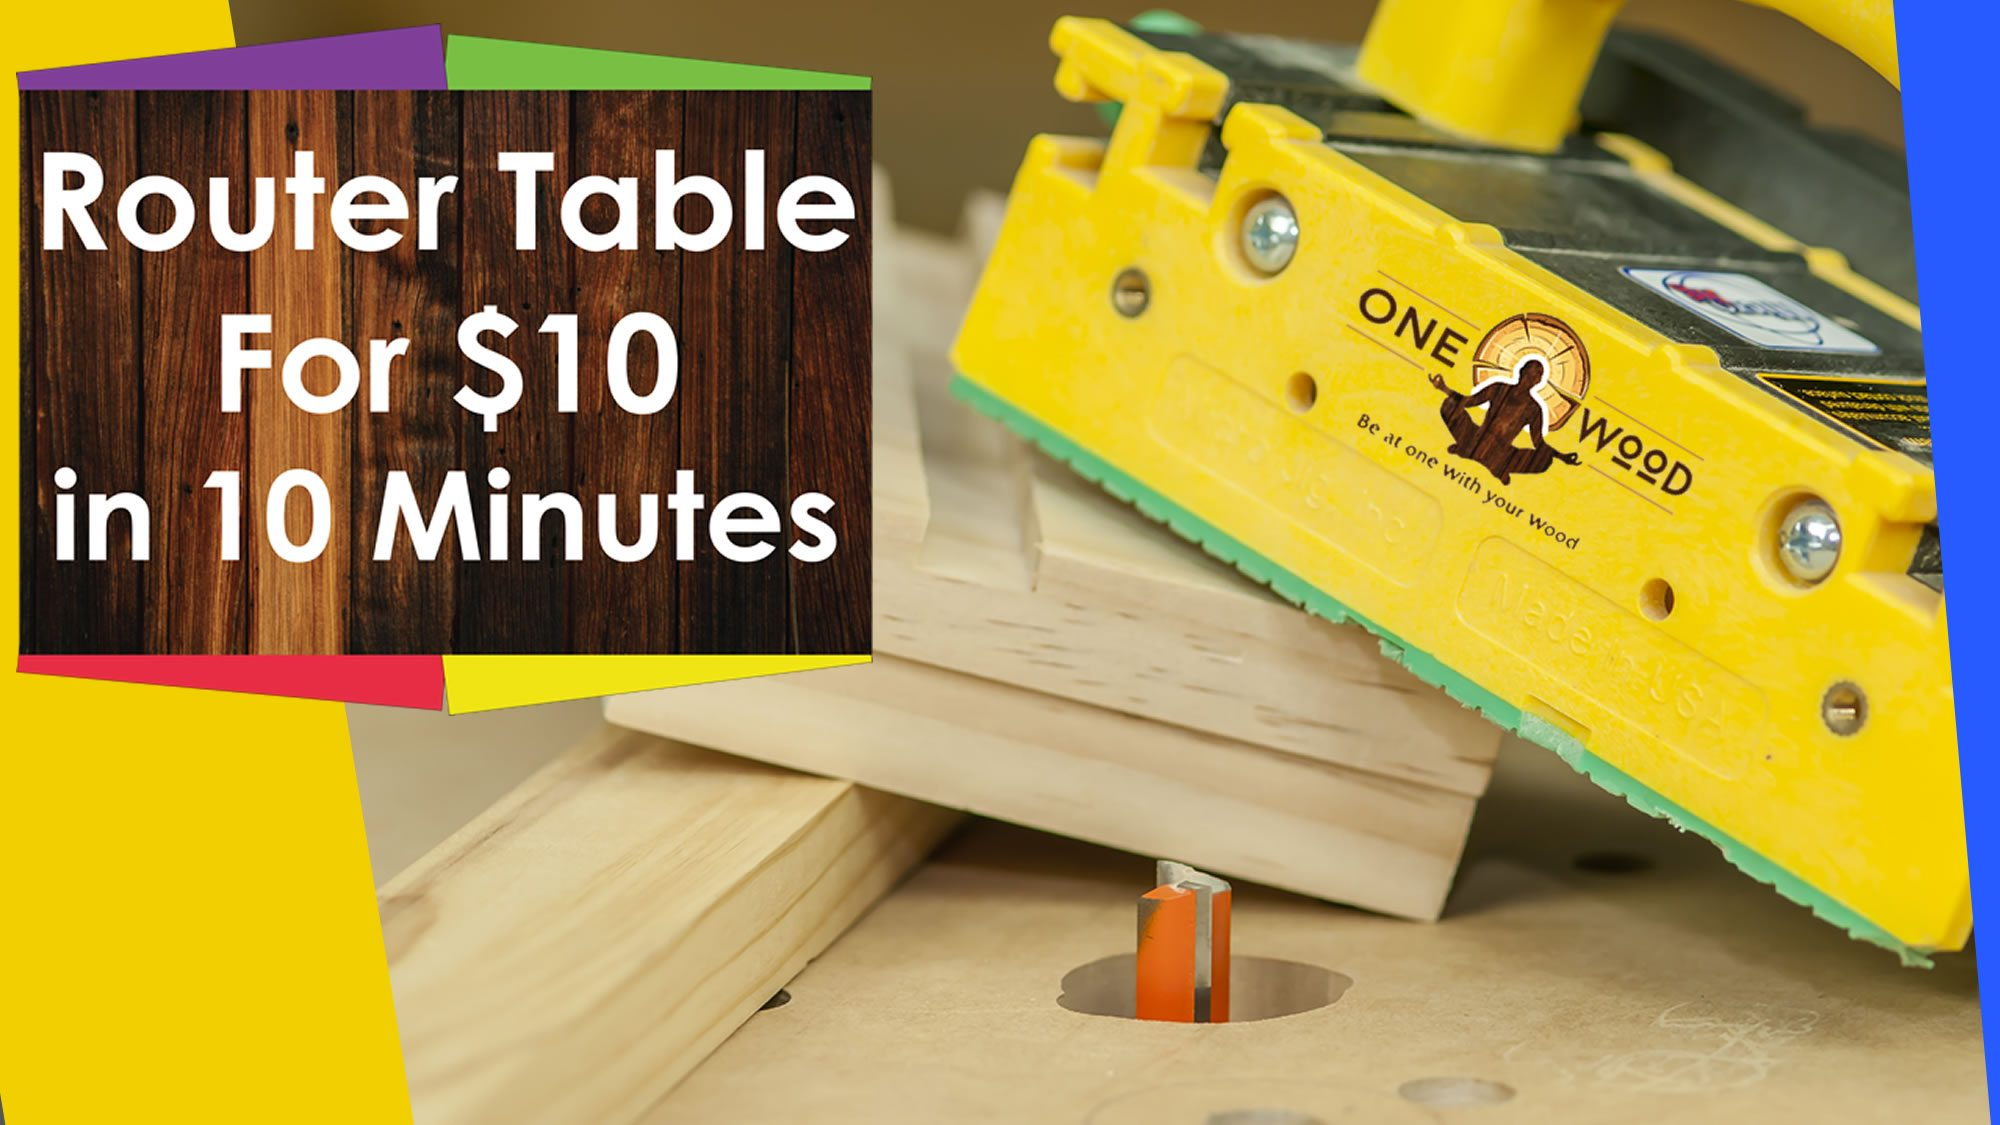 Make a DIY router table for $10